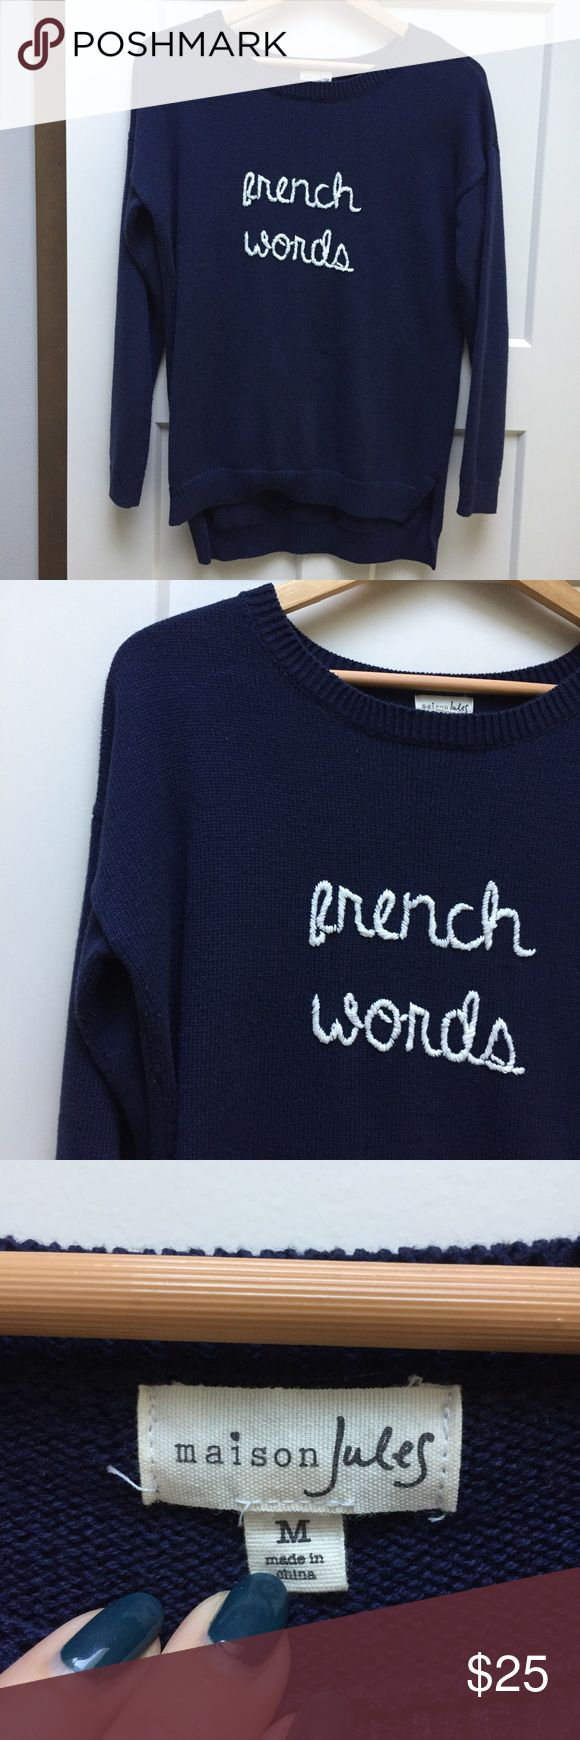 """1 HoUR SAle Super Cute French Words Navy Sweater Gorgeous and comfortable Sweater for Autumn! Chunky knit navy blue sweater with scoop neck and """"French Words"""" writing in white cursive. Very tongue in cheek! EUC Maison Jules brand size medium. Maison Jules Sweaters Crew & Scoop Necks"""